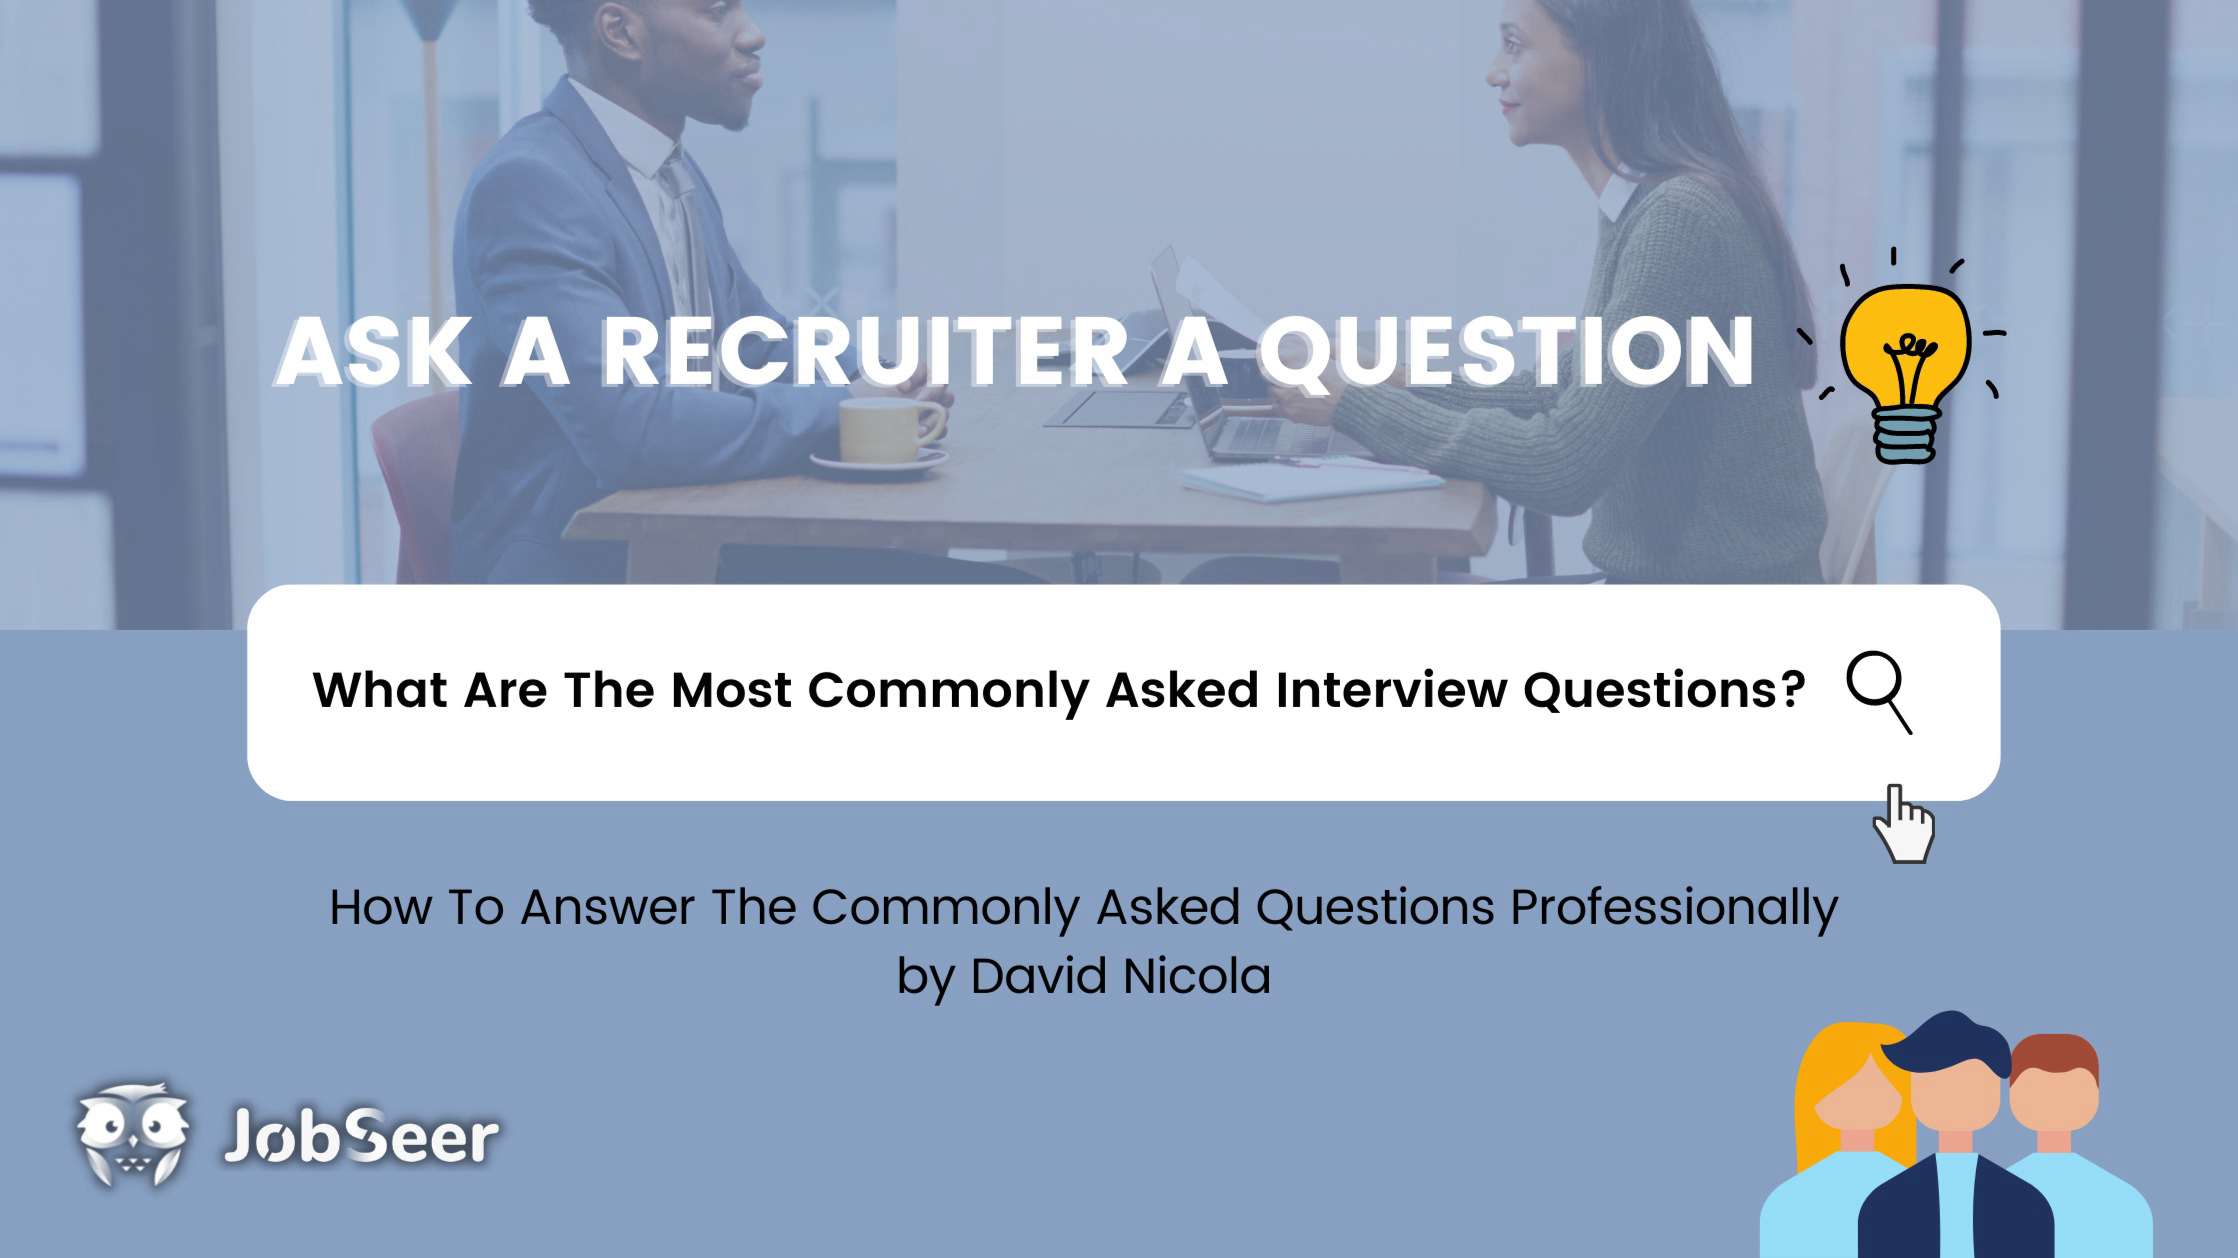 Ask-A-Recruiter%3A-How-To-Professionally-Answer-Common-Interview-Questions